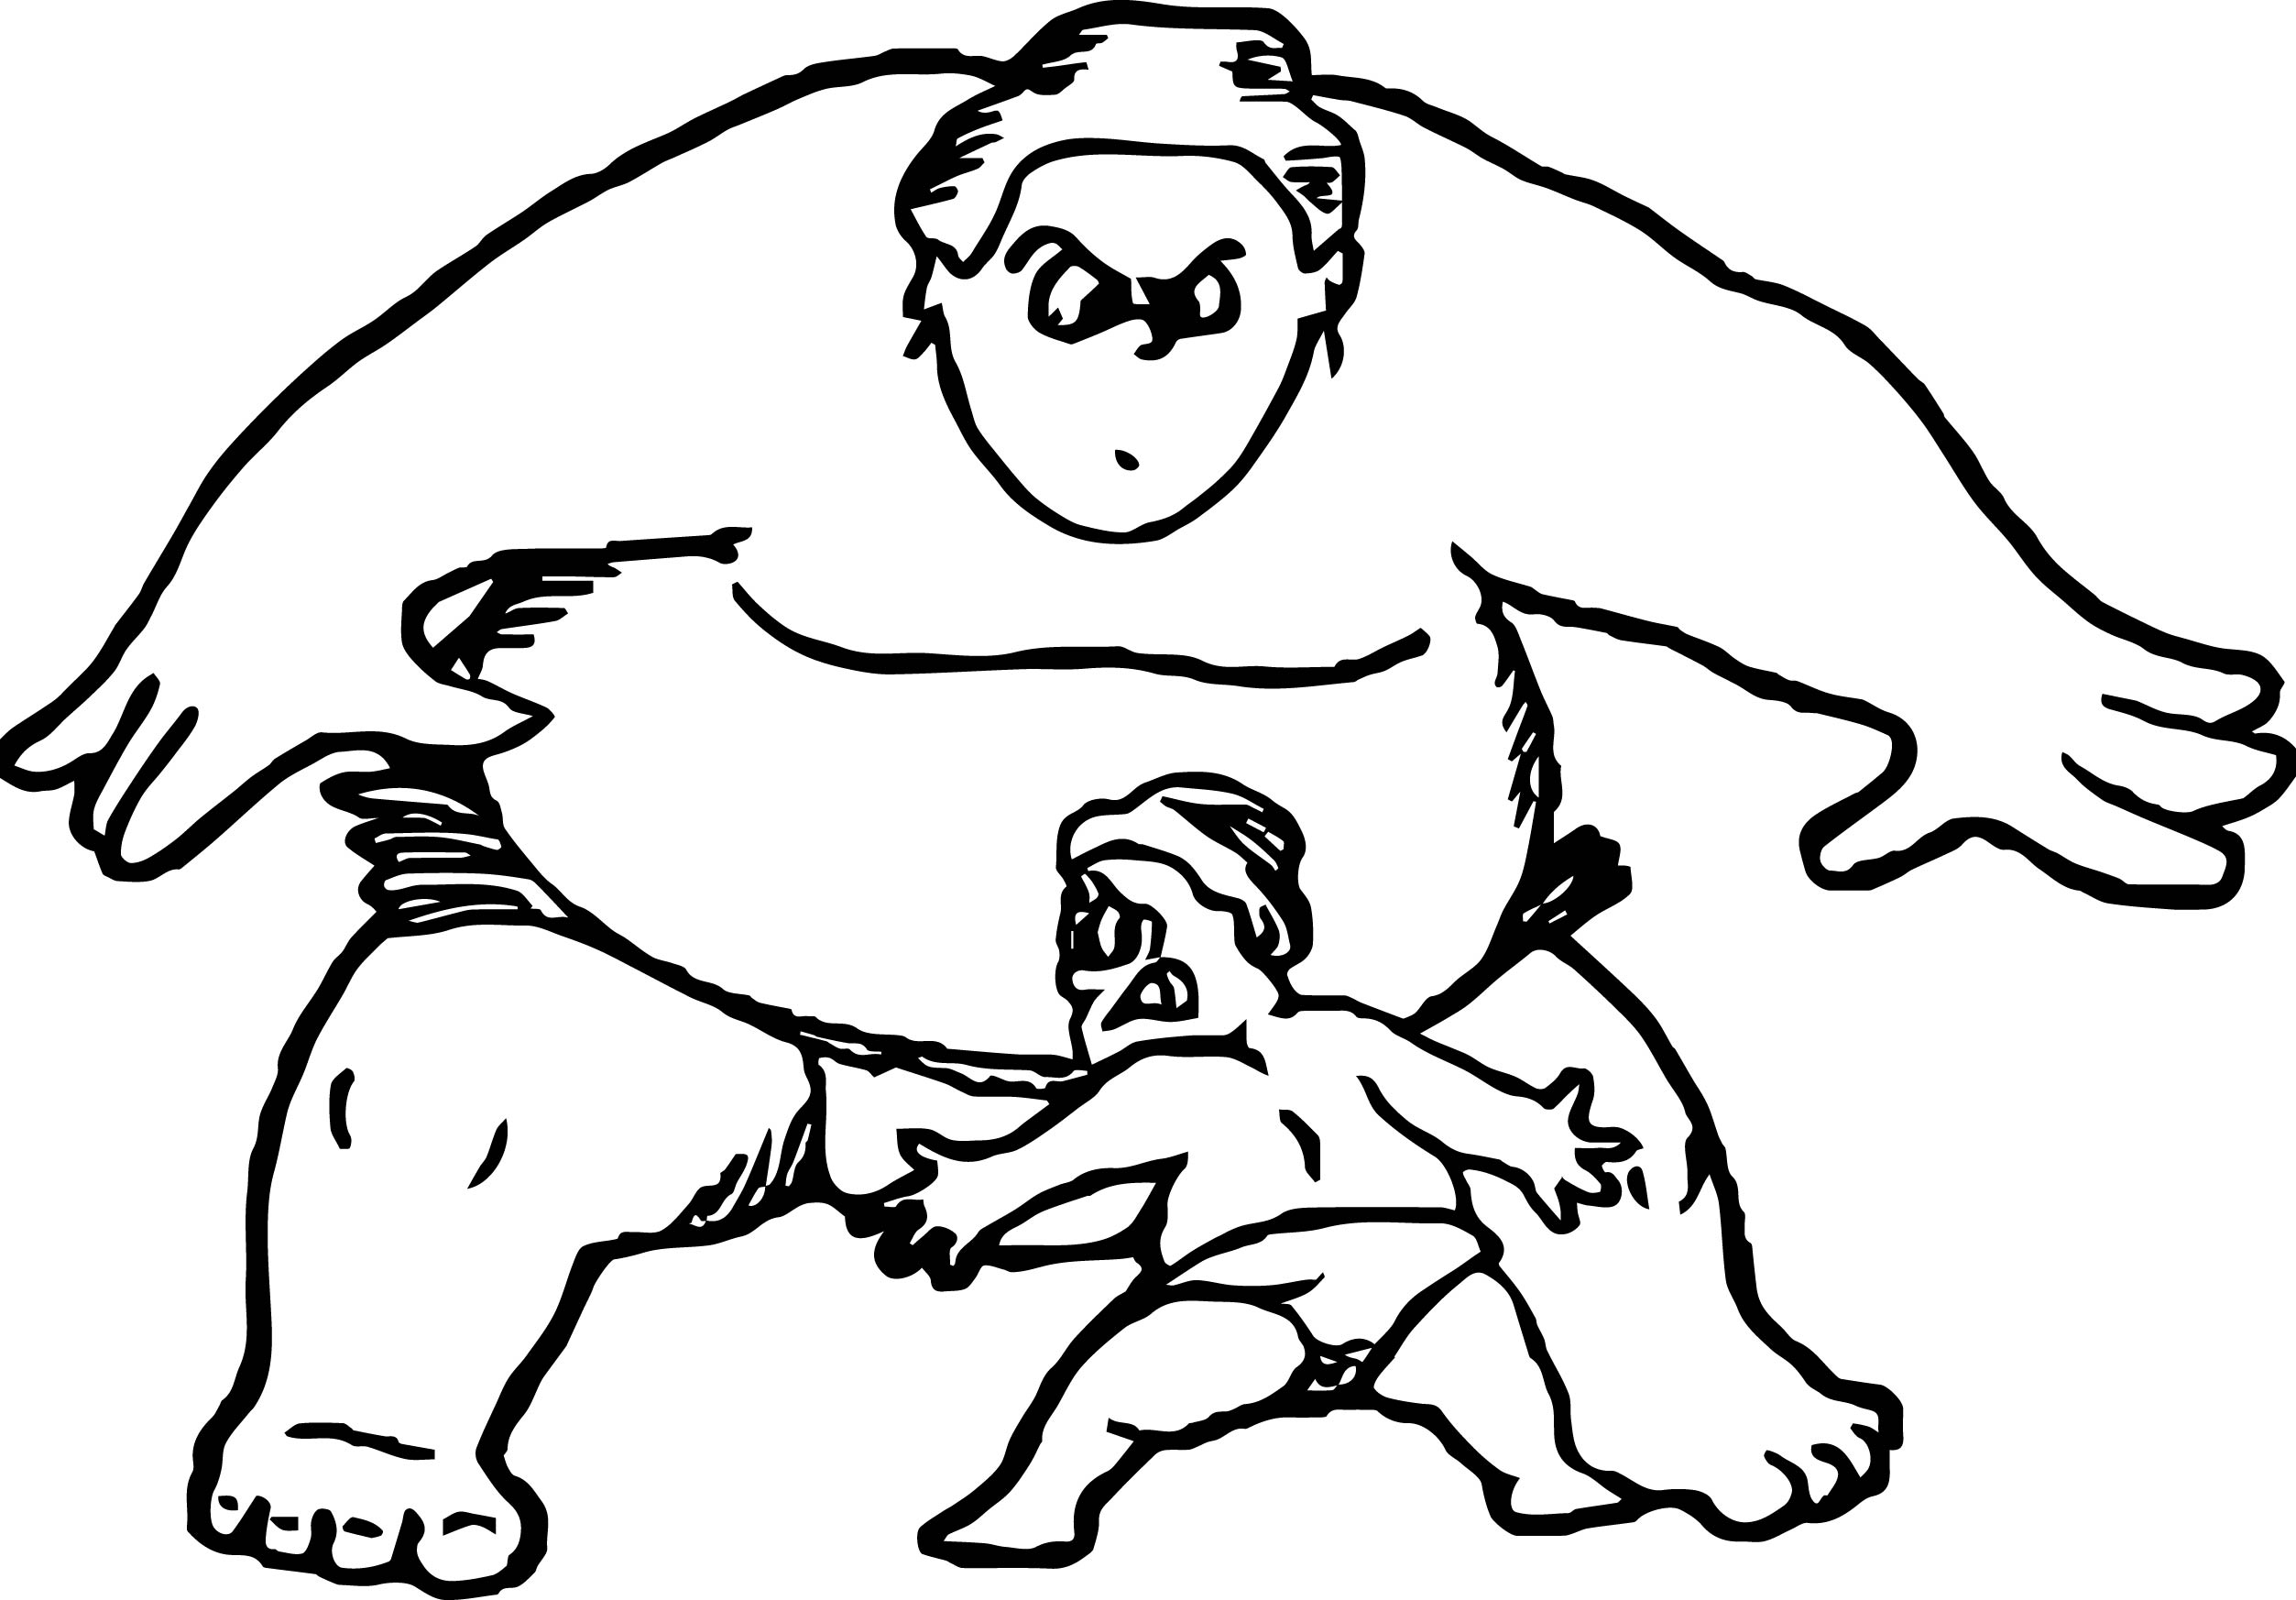 Sport Graphics Sumo Wrestling Coloring Page